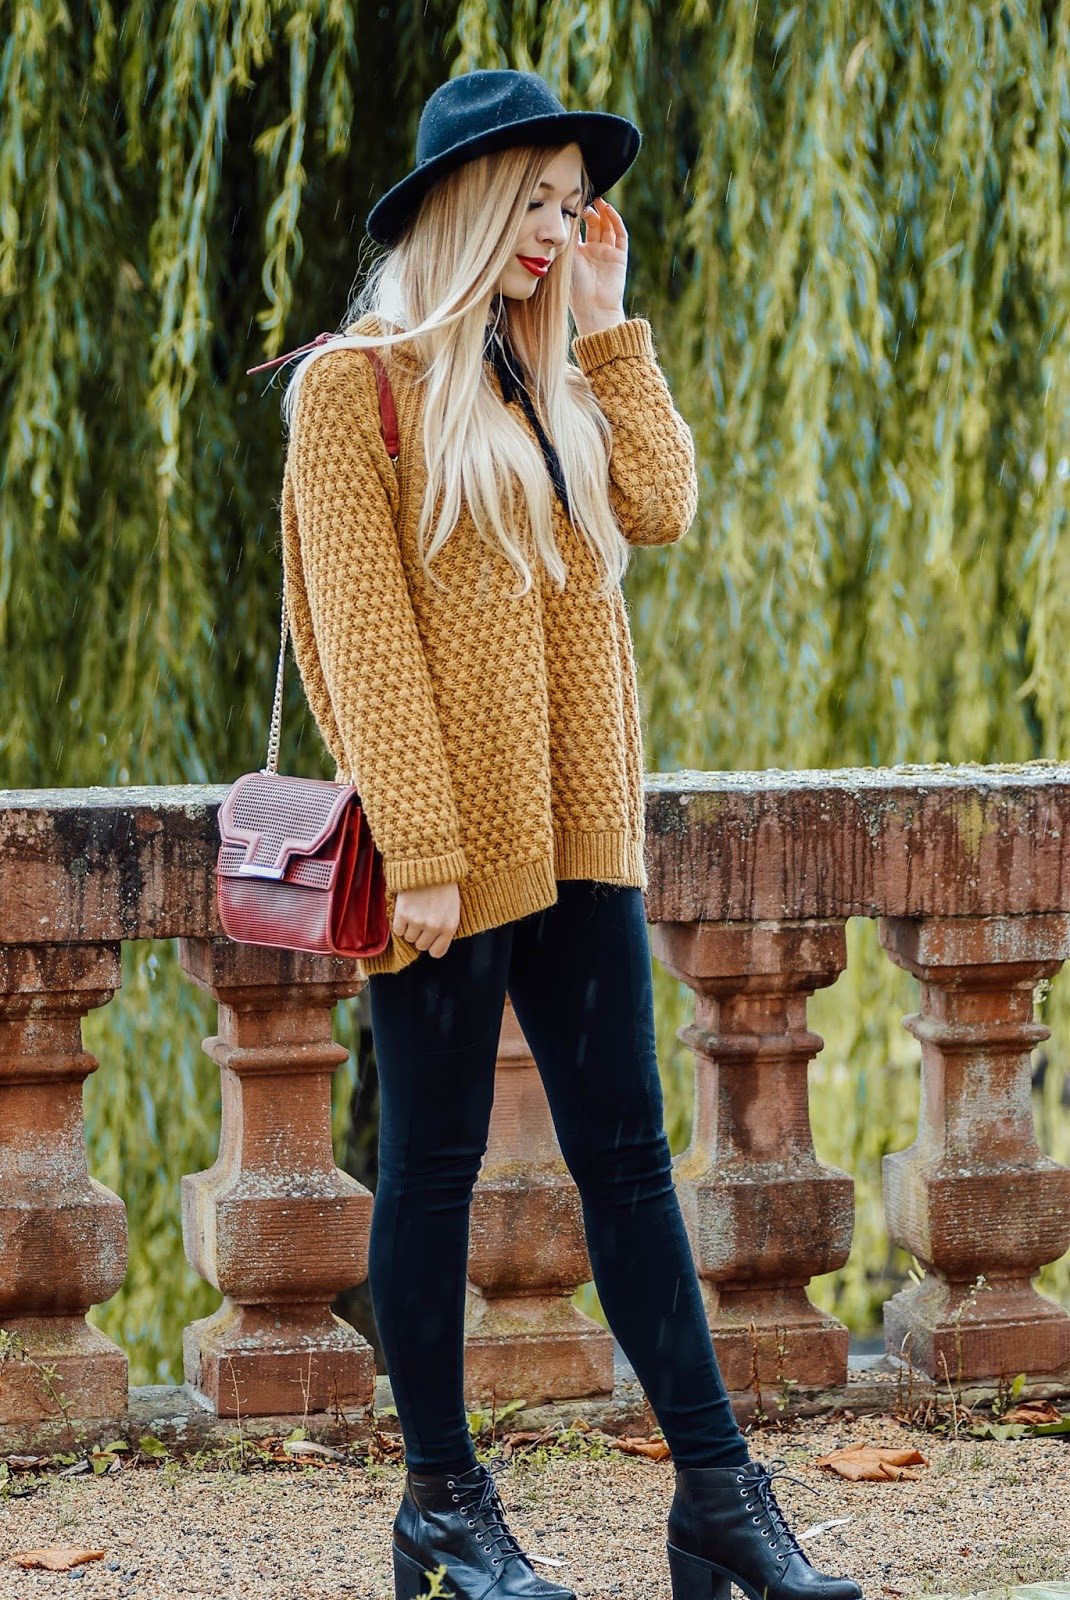 Fashionblogger, Germanblogger, Blogger, Modeblog, Fashionblog aus Würzburg, First Atumn Look, Hut, Cozy Oversized Pullover, Senfgelb, Vagabond Shoes, Stiefel, Asos, Jeggings, Mac, Ruby Woo